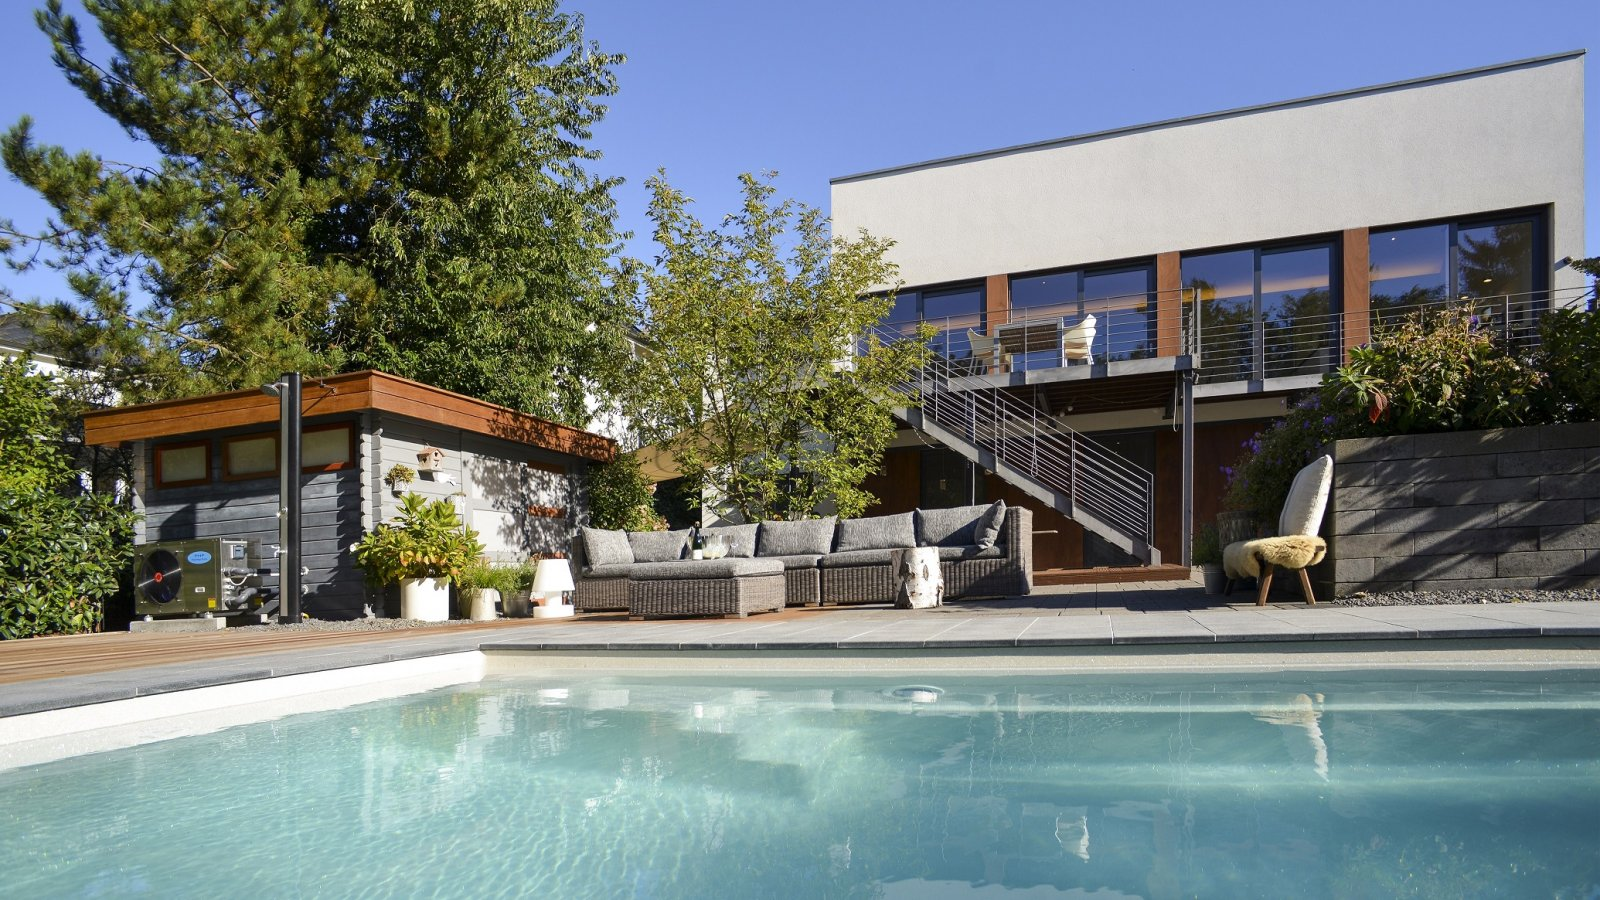 Compass Carbon Ceramic Pool Baltes Swim, Spa & Home GmbH Trier Luxembourg